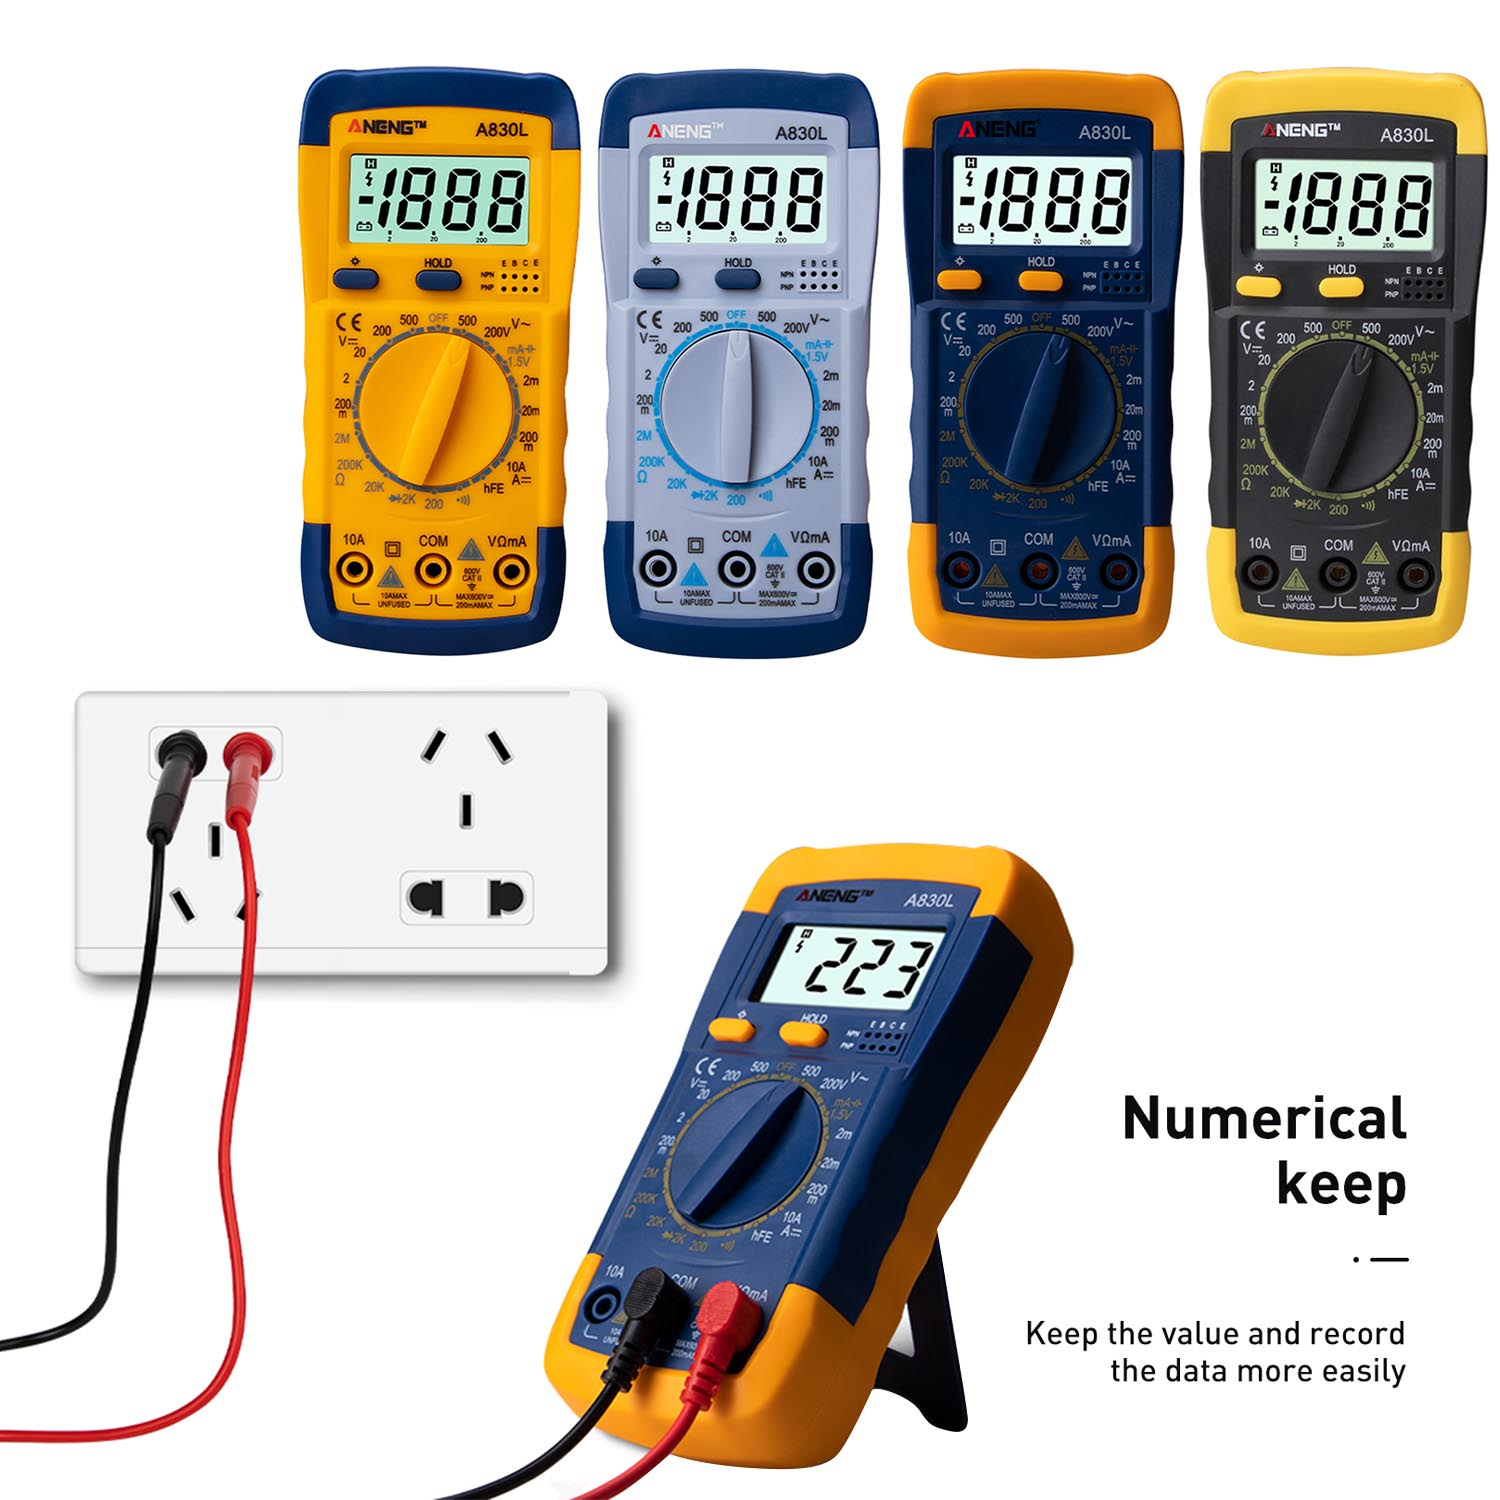 A830L LCD Digital Multimeter Mini Pocket Hand-held Multimeter Voltmeter Ammeter Ohmmeter Multimeter Volt AC DC Tester Meter